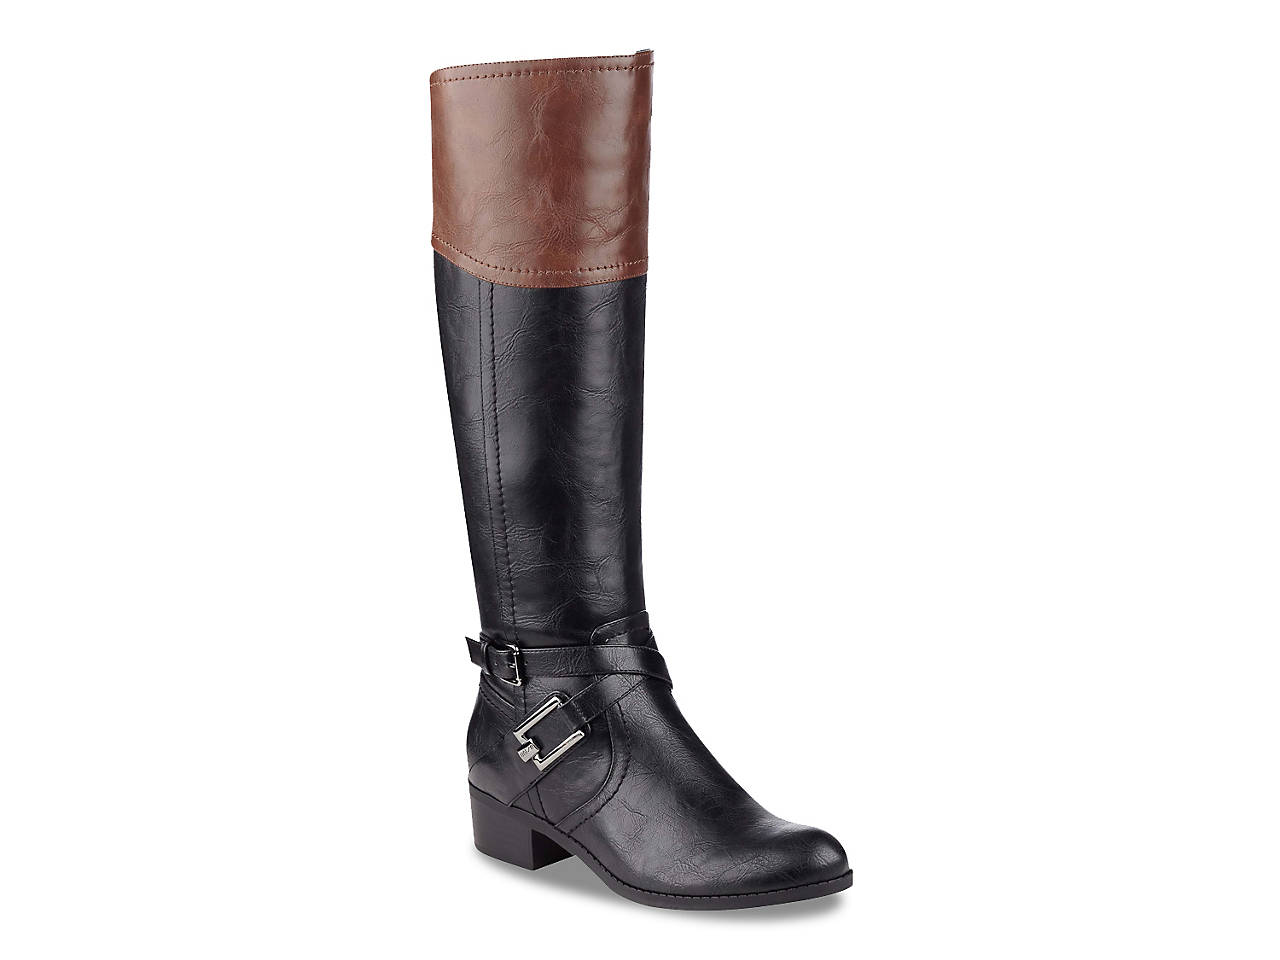 49fe804ff7ec Unisa Trinee Riding Boot Women s Shoes